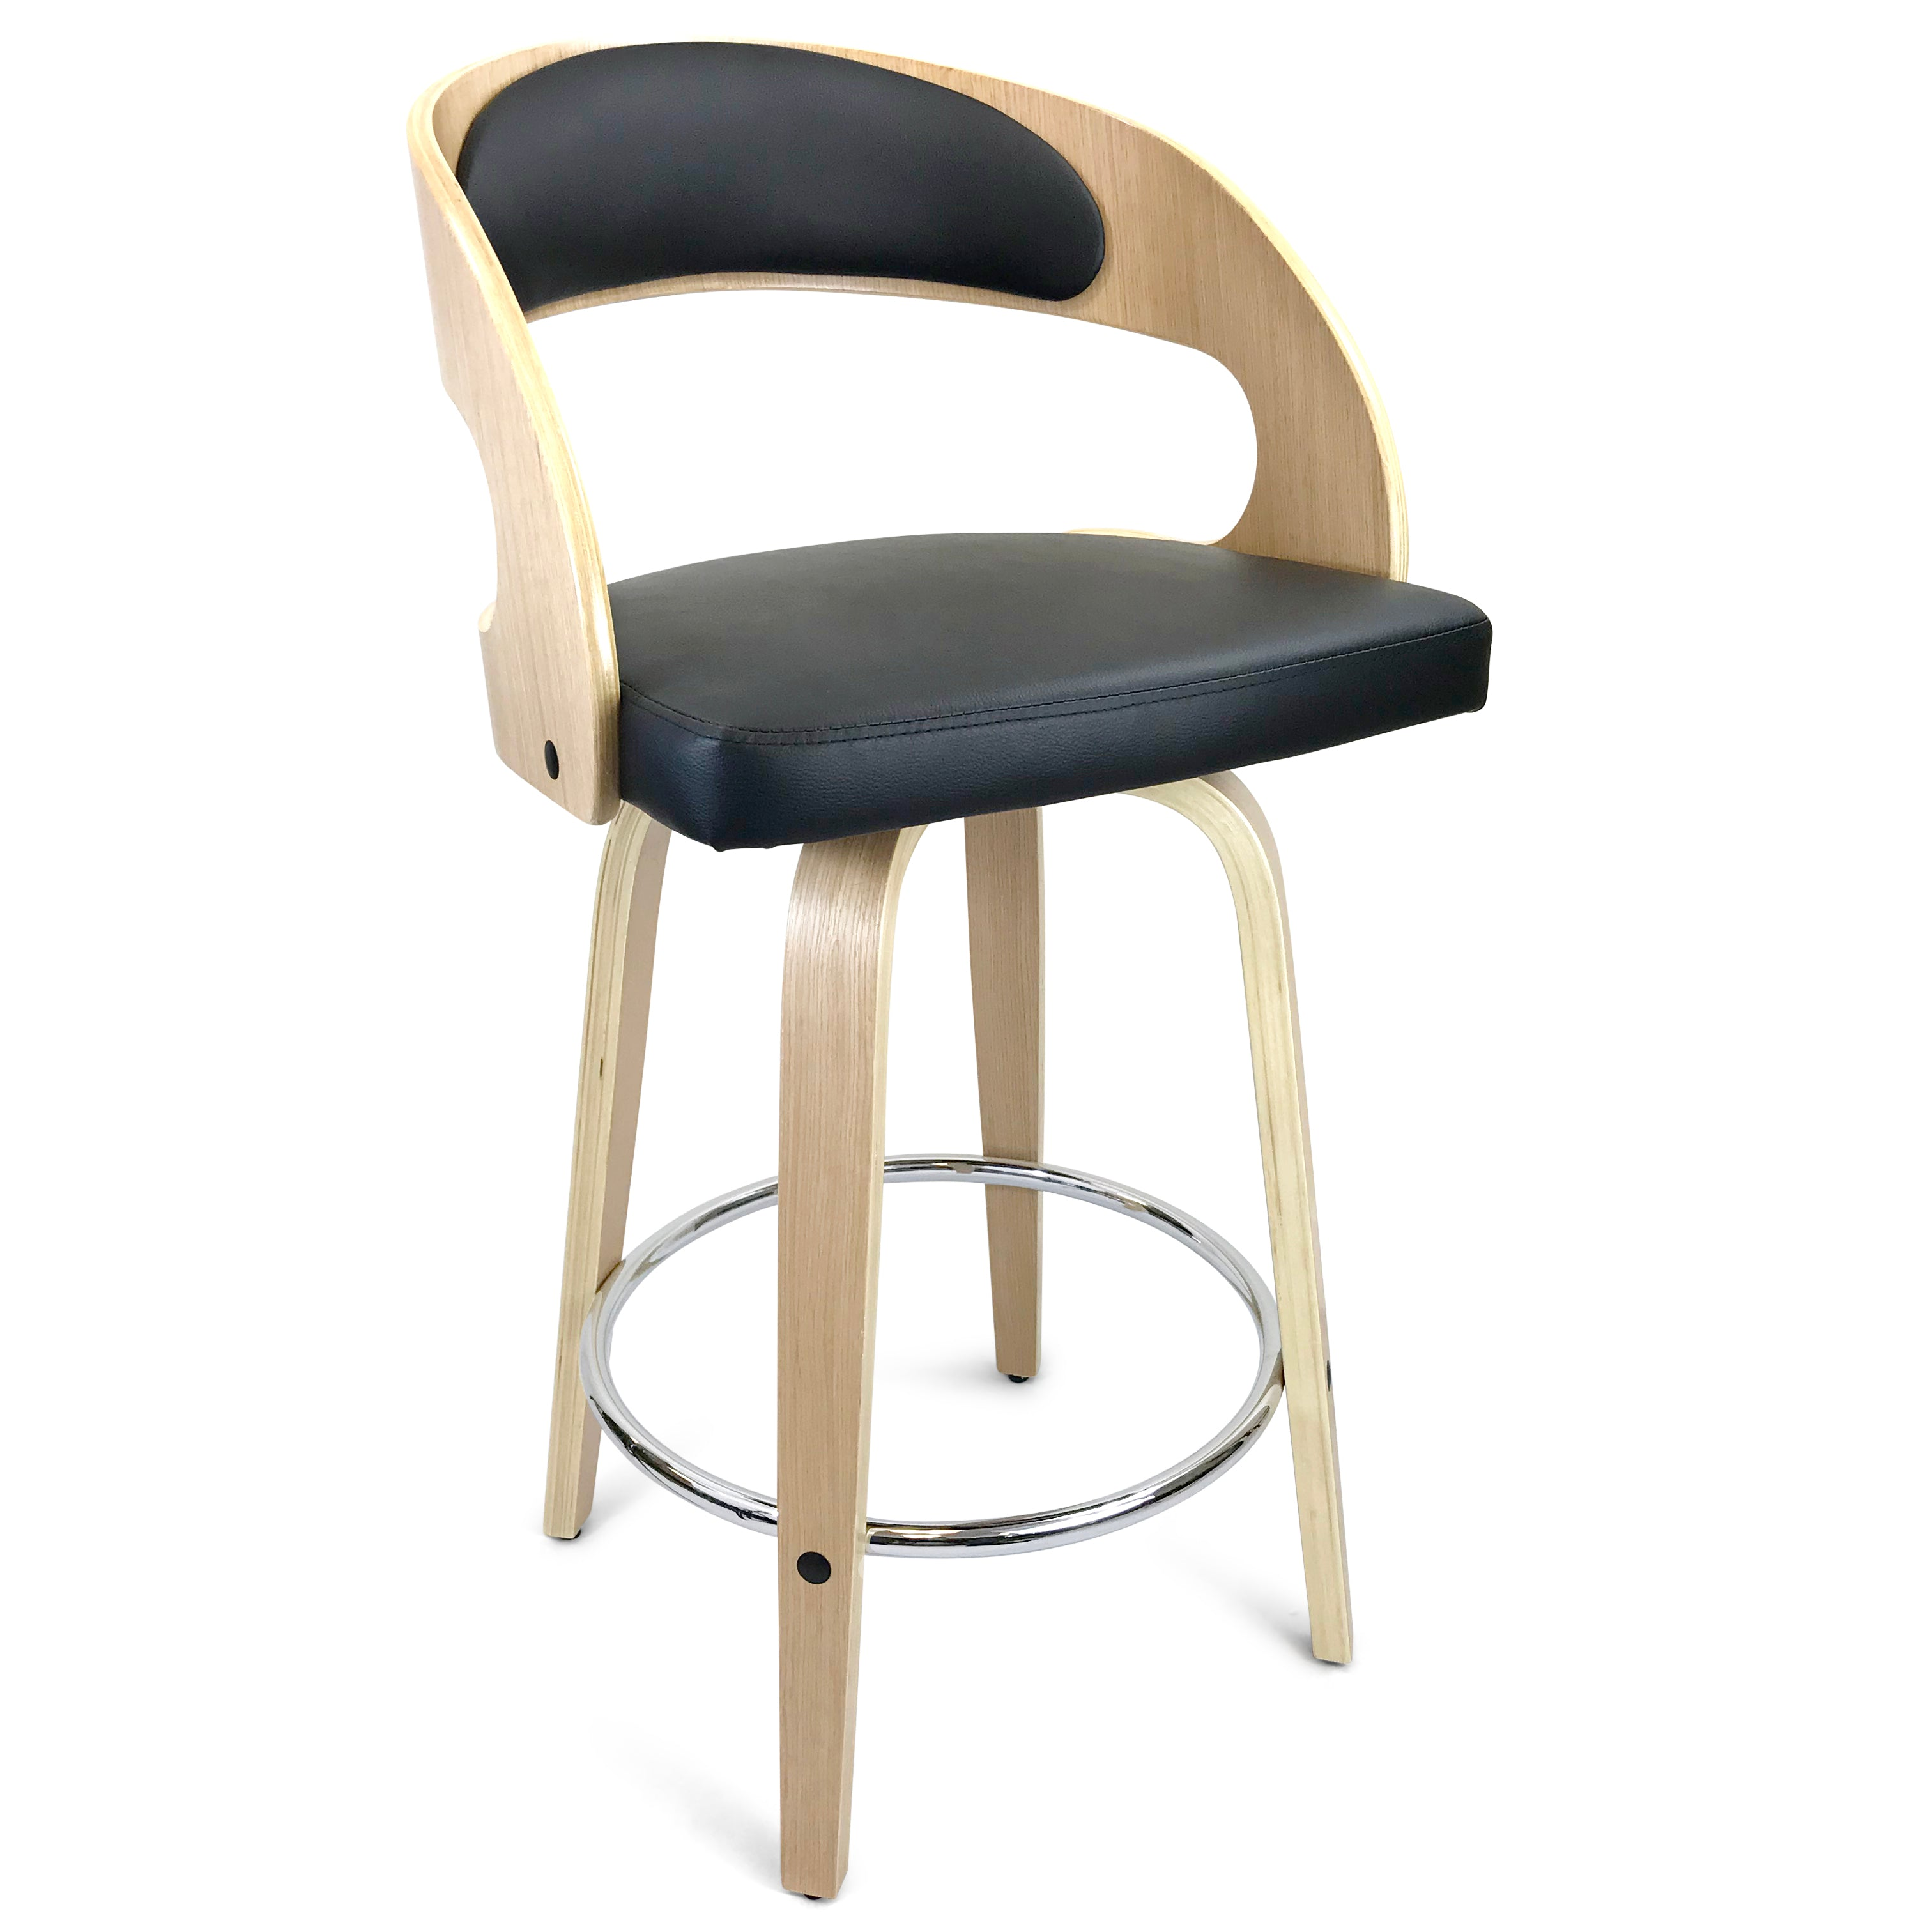 Pleasing Amy Leatherette Kitchen Bar Stool In Oak Black Ocoug Best Dining Table And Chair Ideas Images Ocougorg